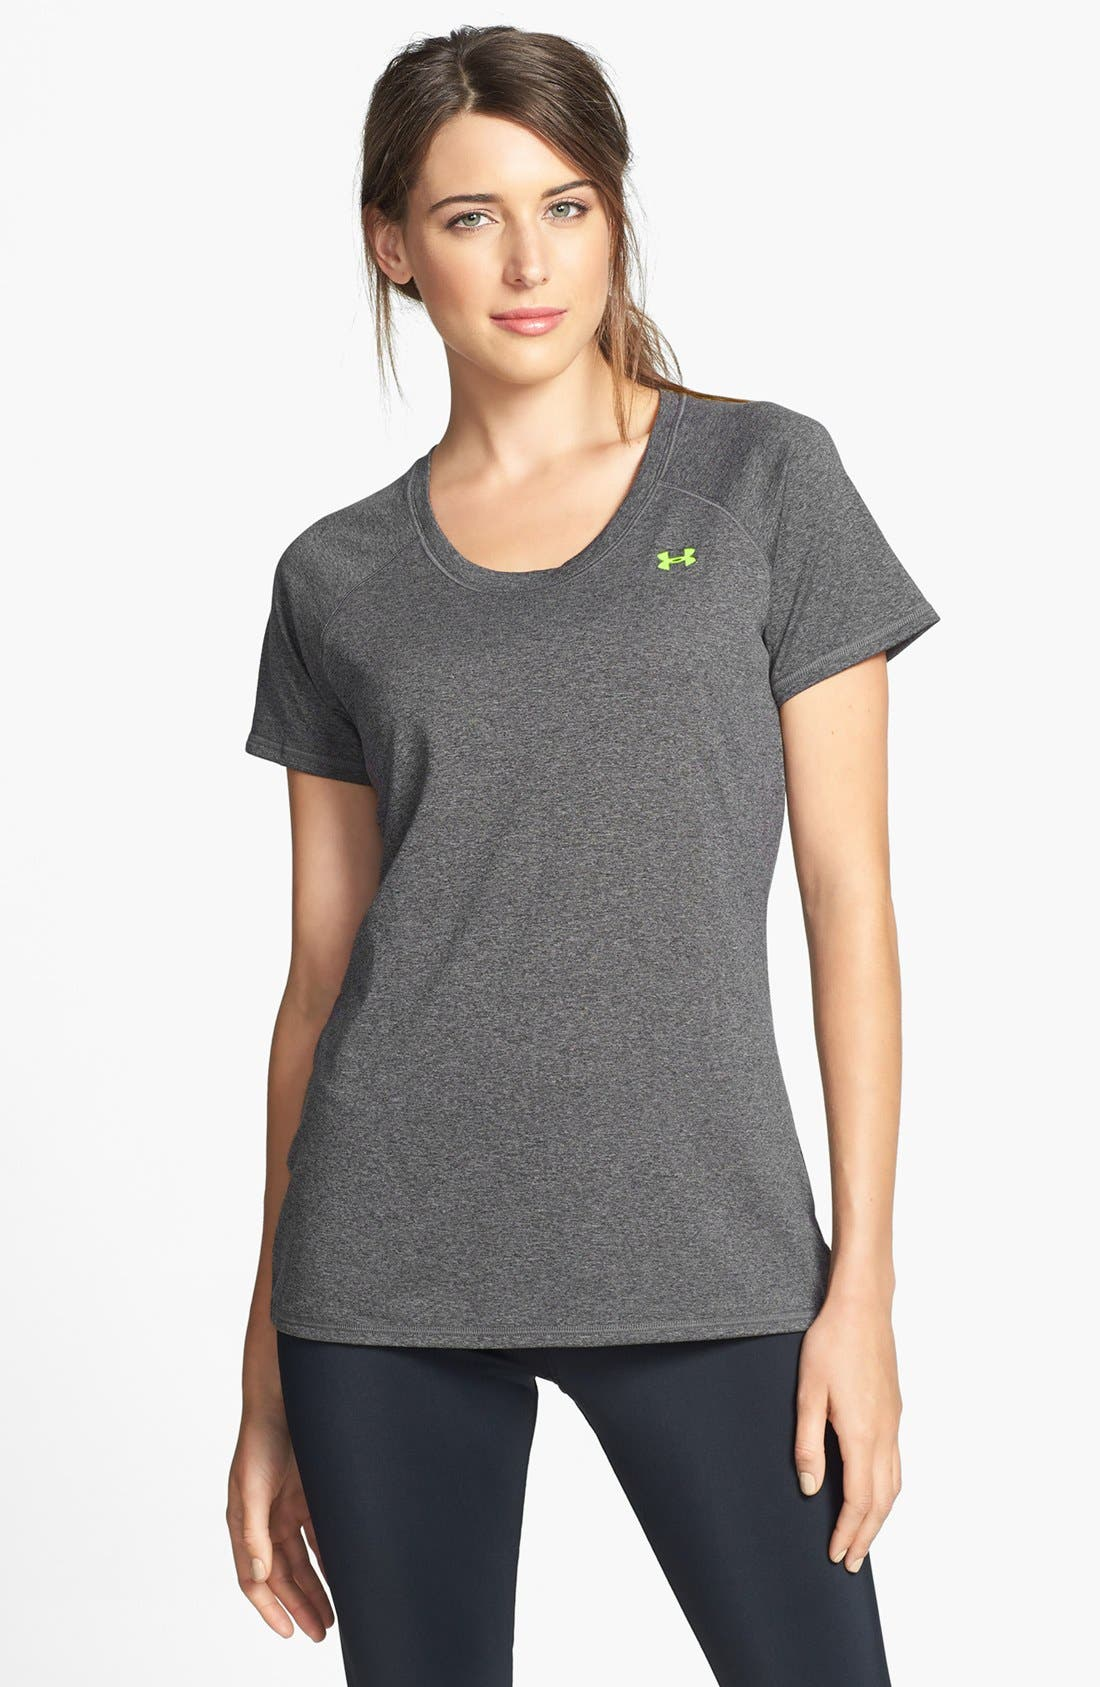 Alternate Image 1 Selected - Under Armour 'Go the Distance' Tee